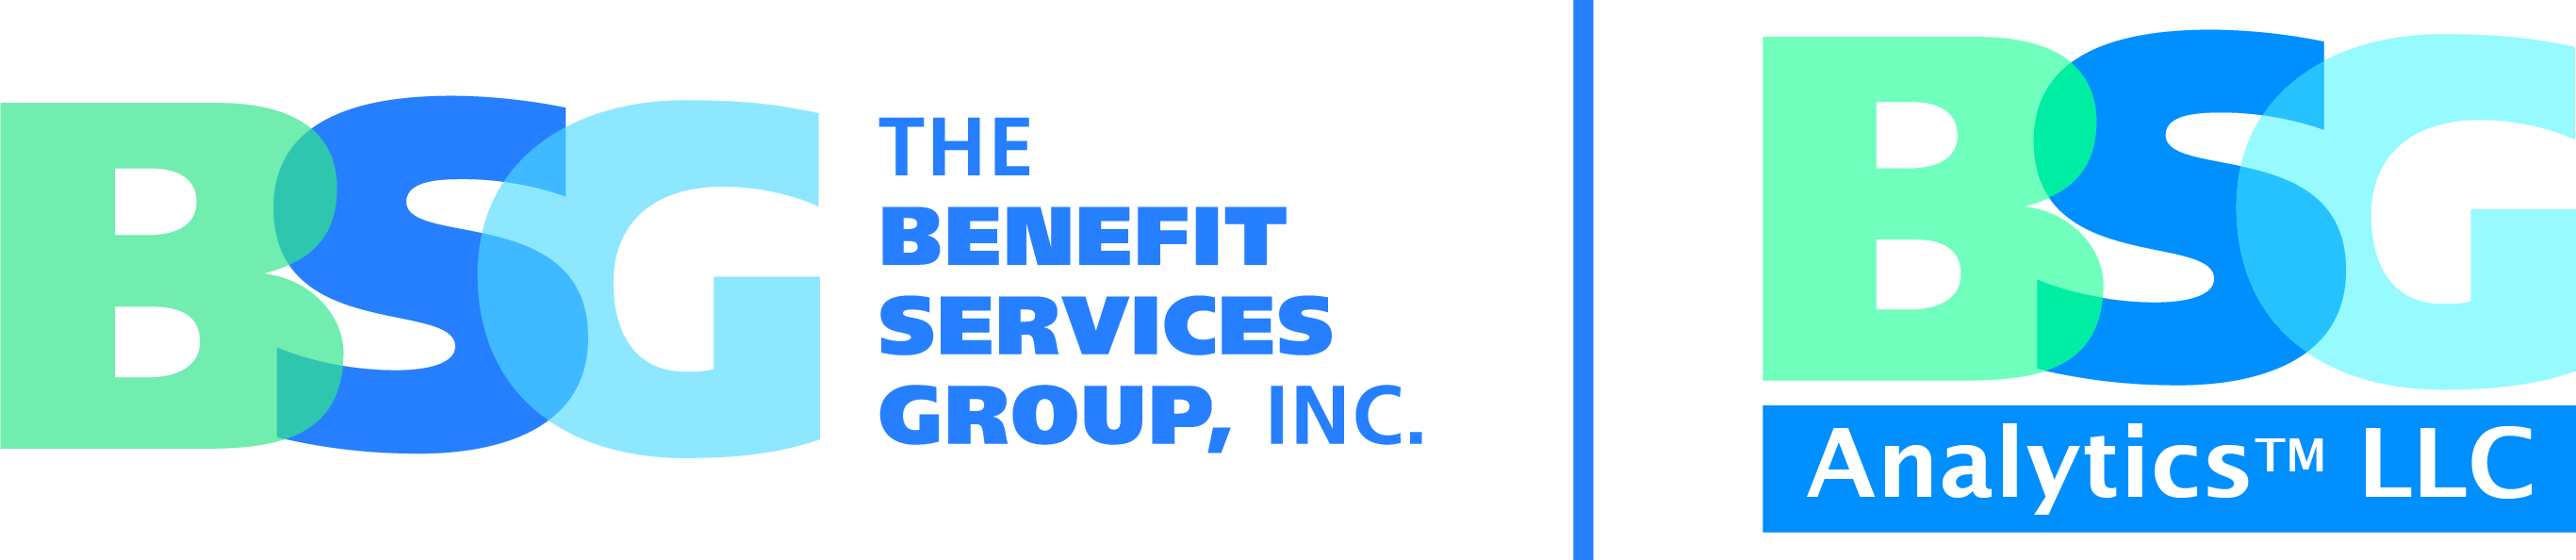 The Benefits Services Group, Inc